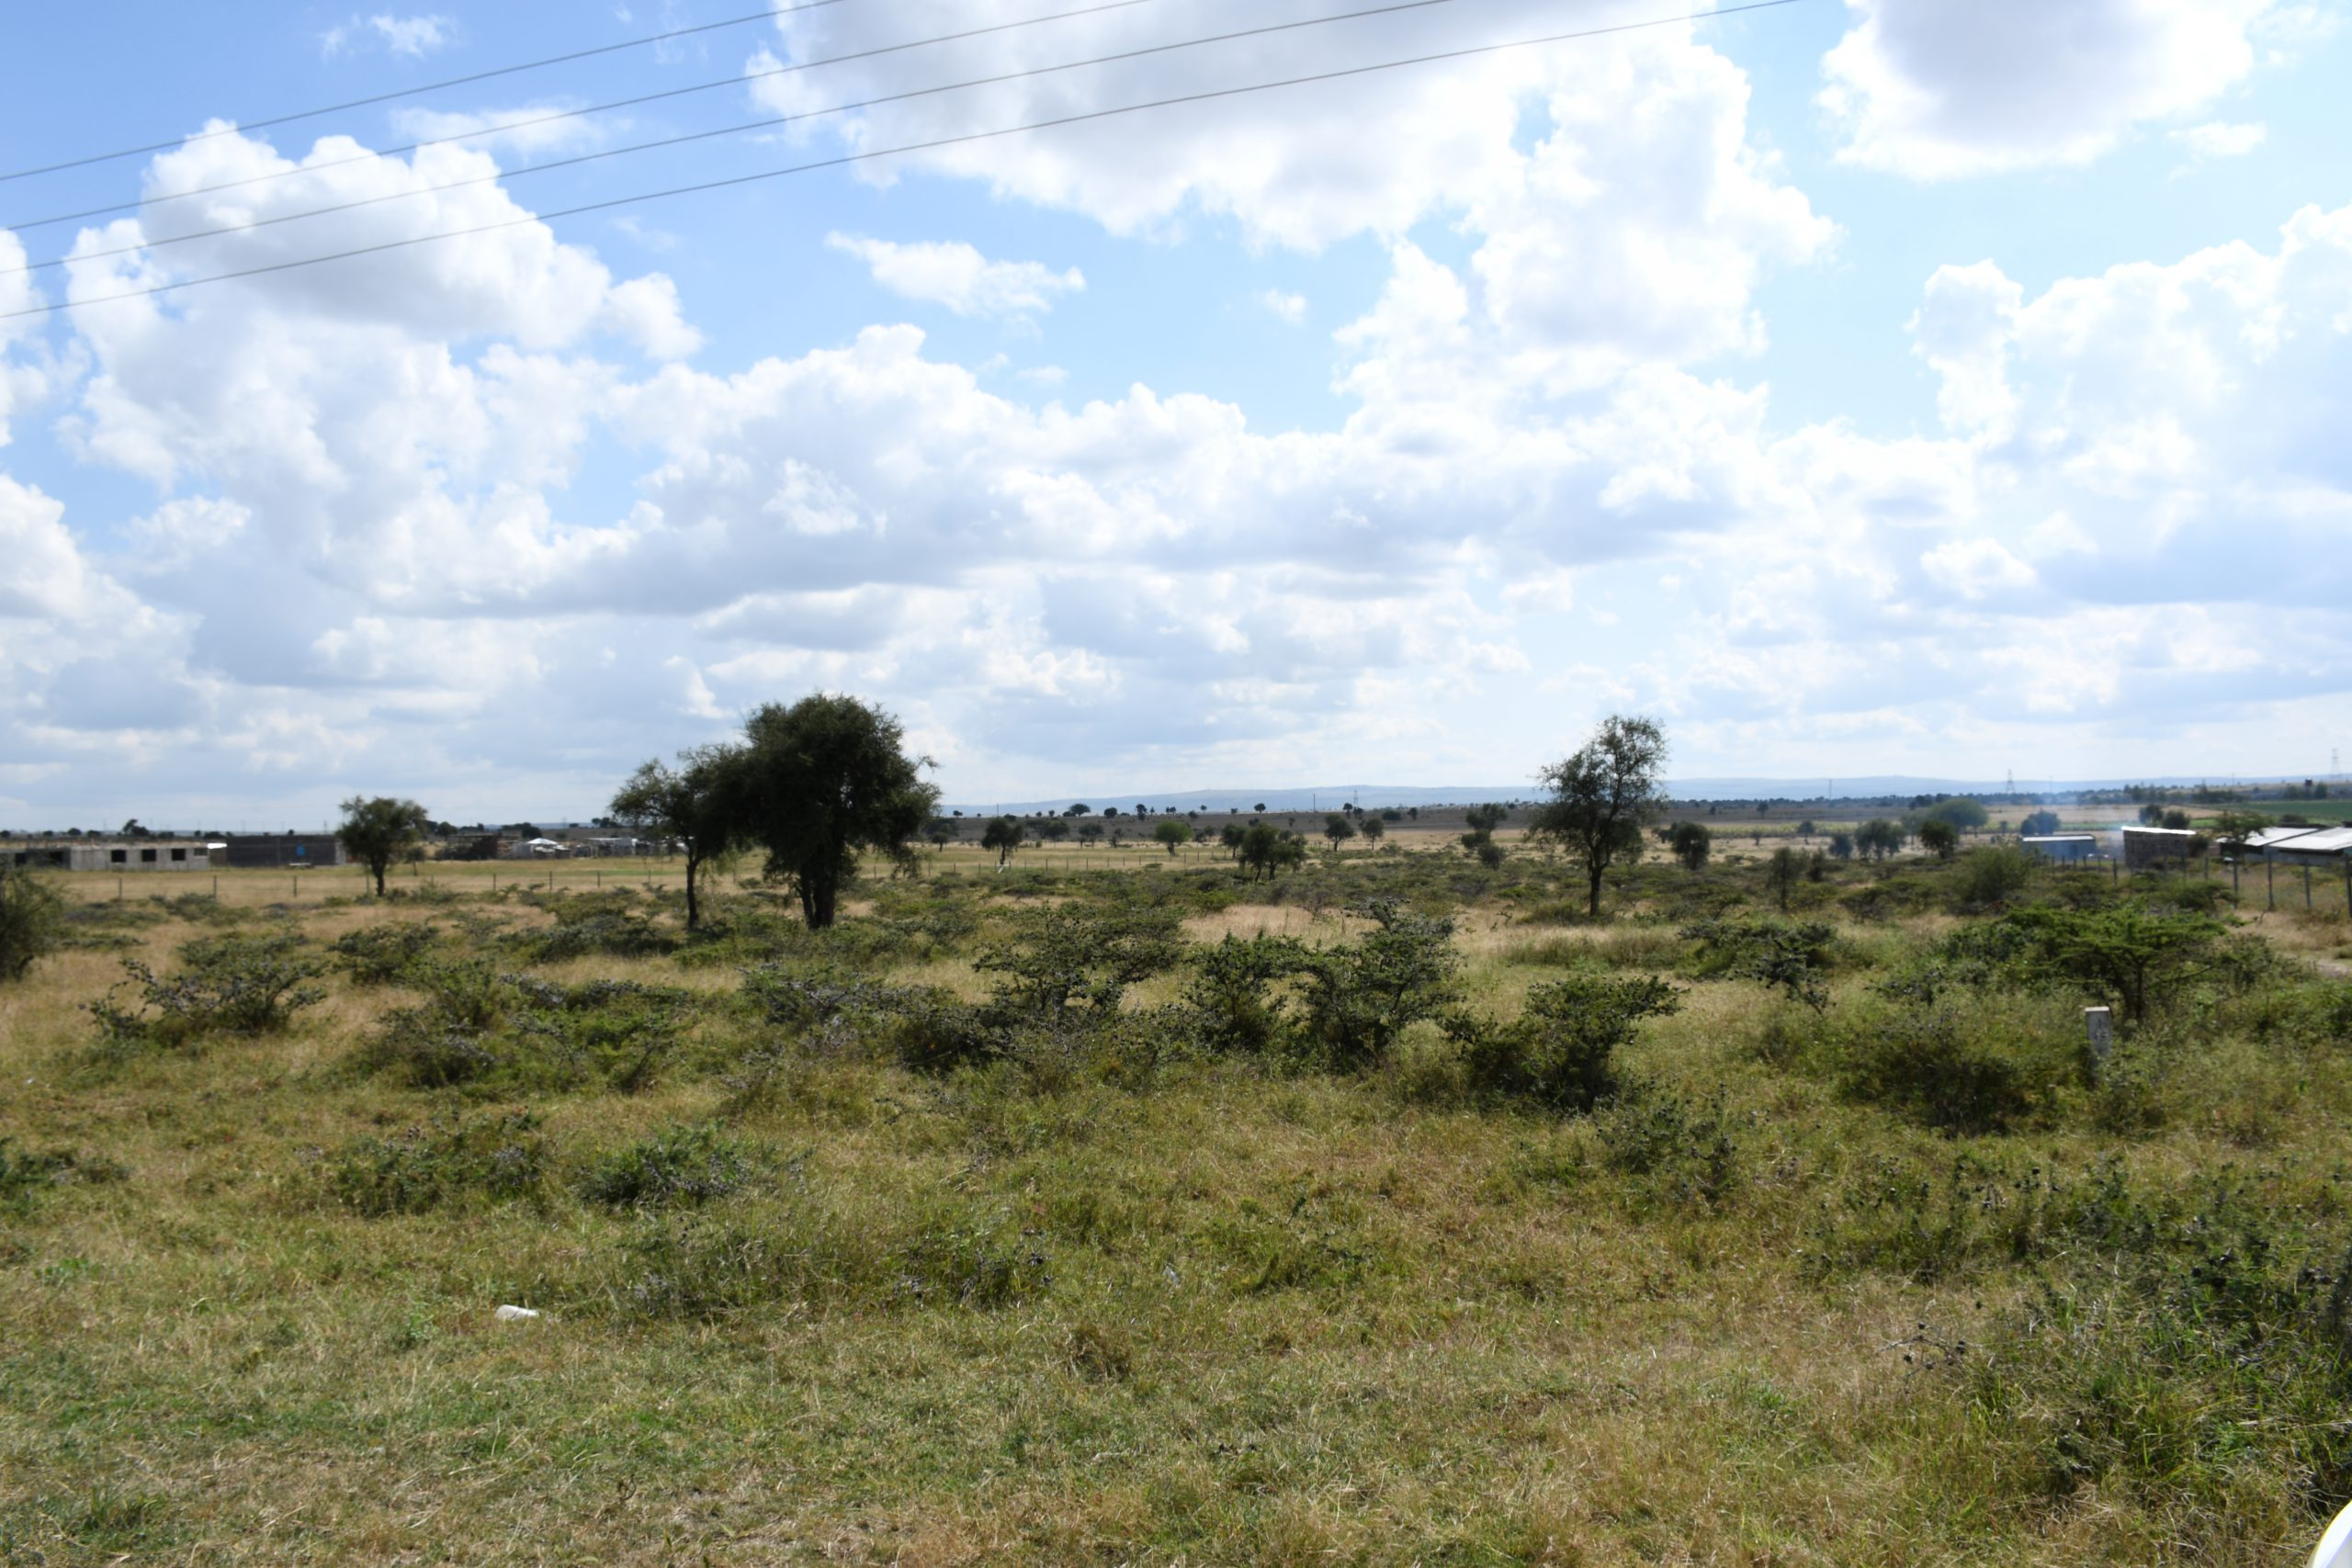 Why land remains an ideal investment option